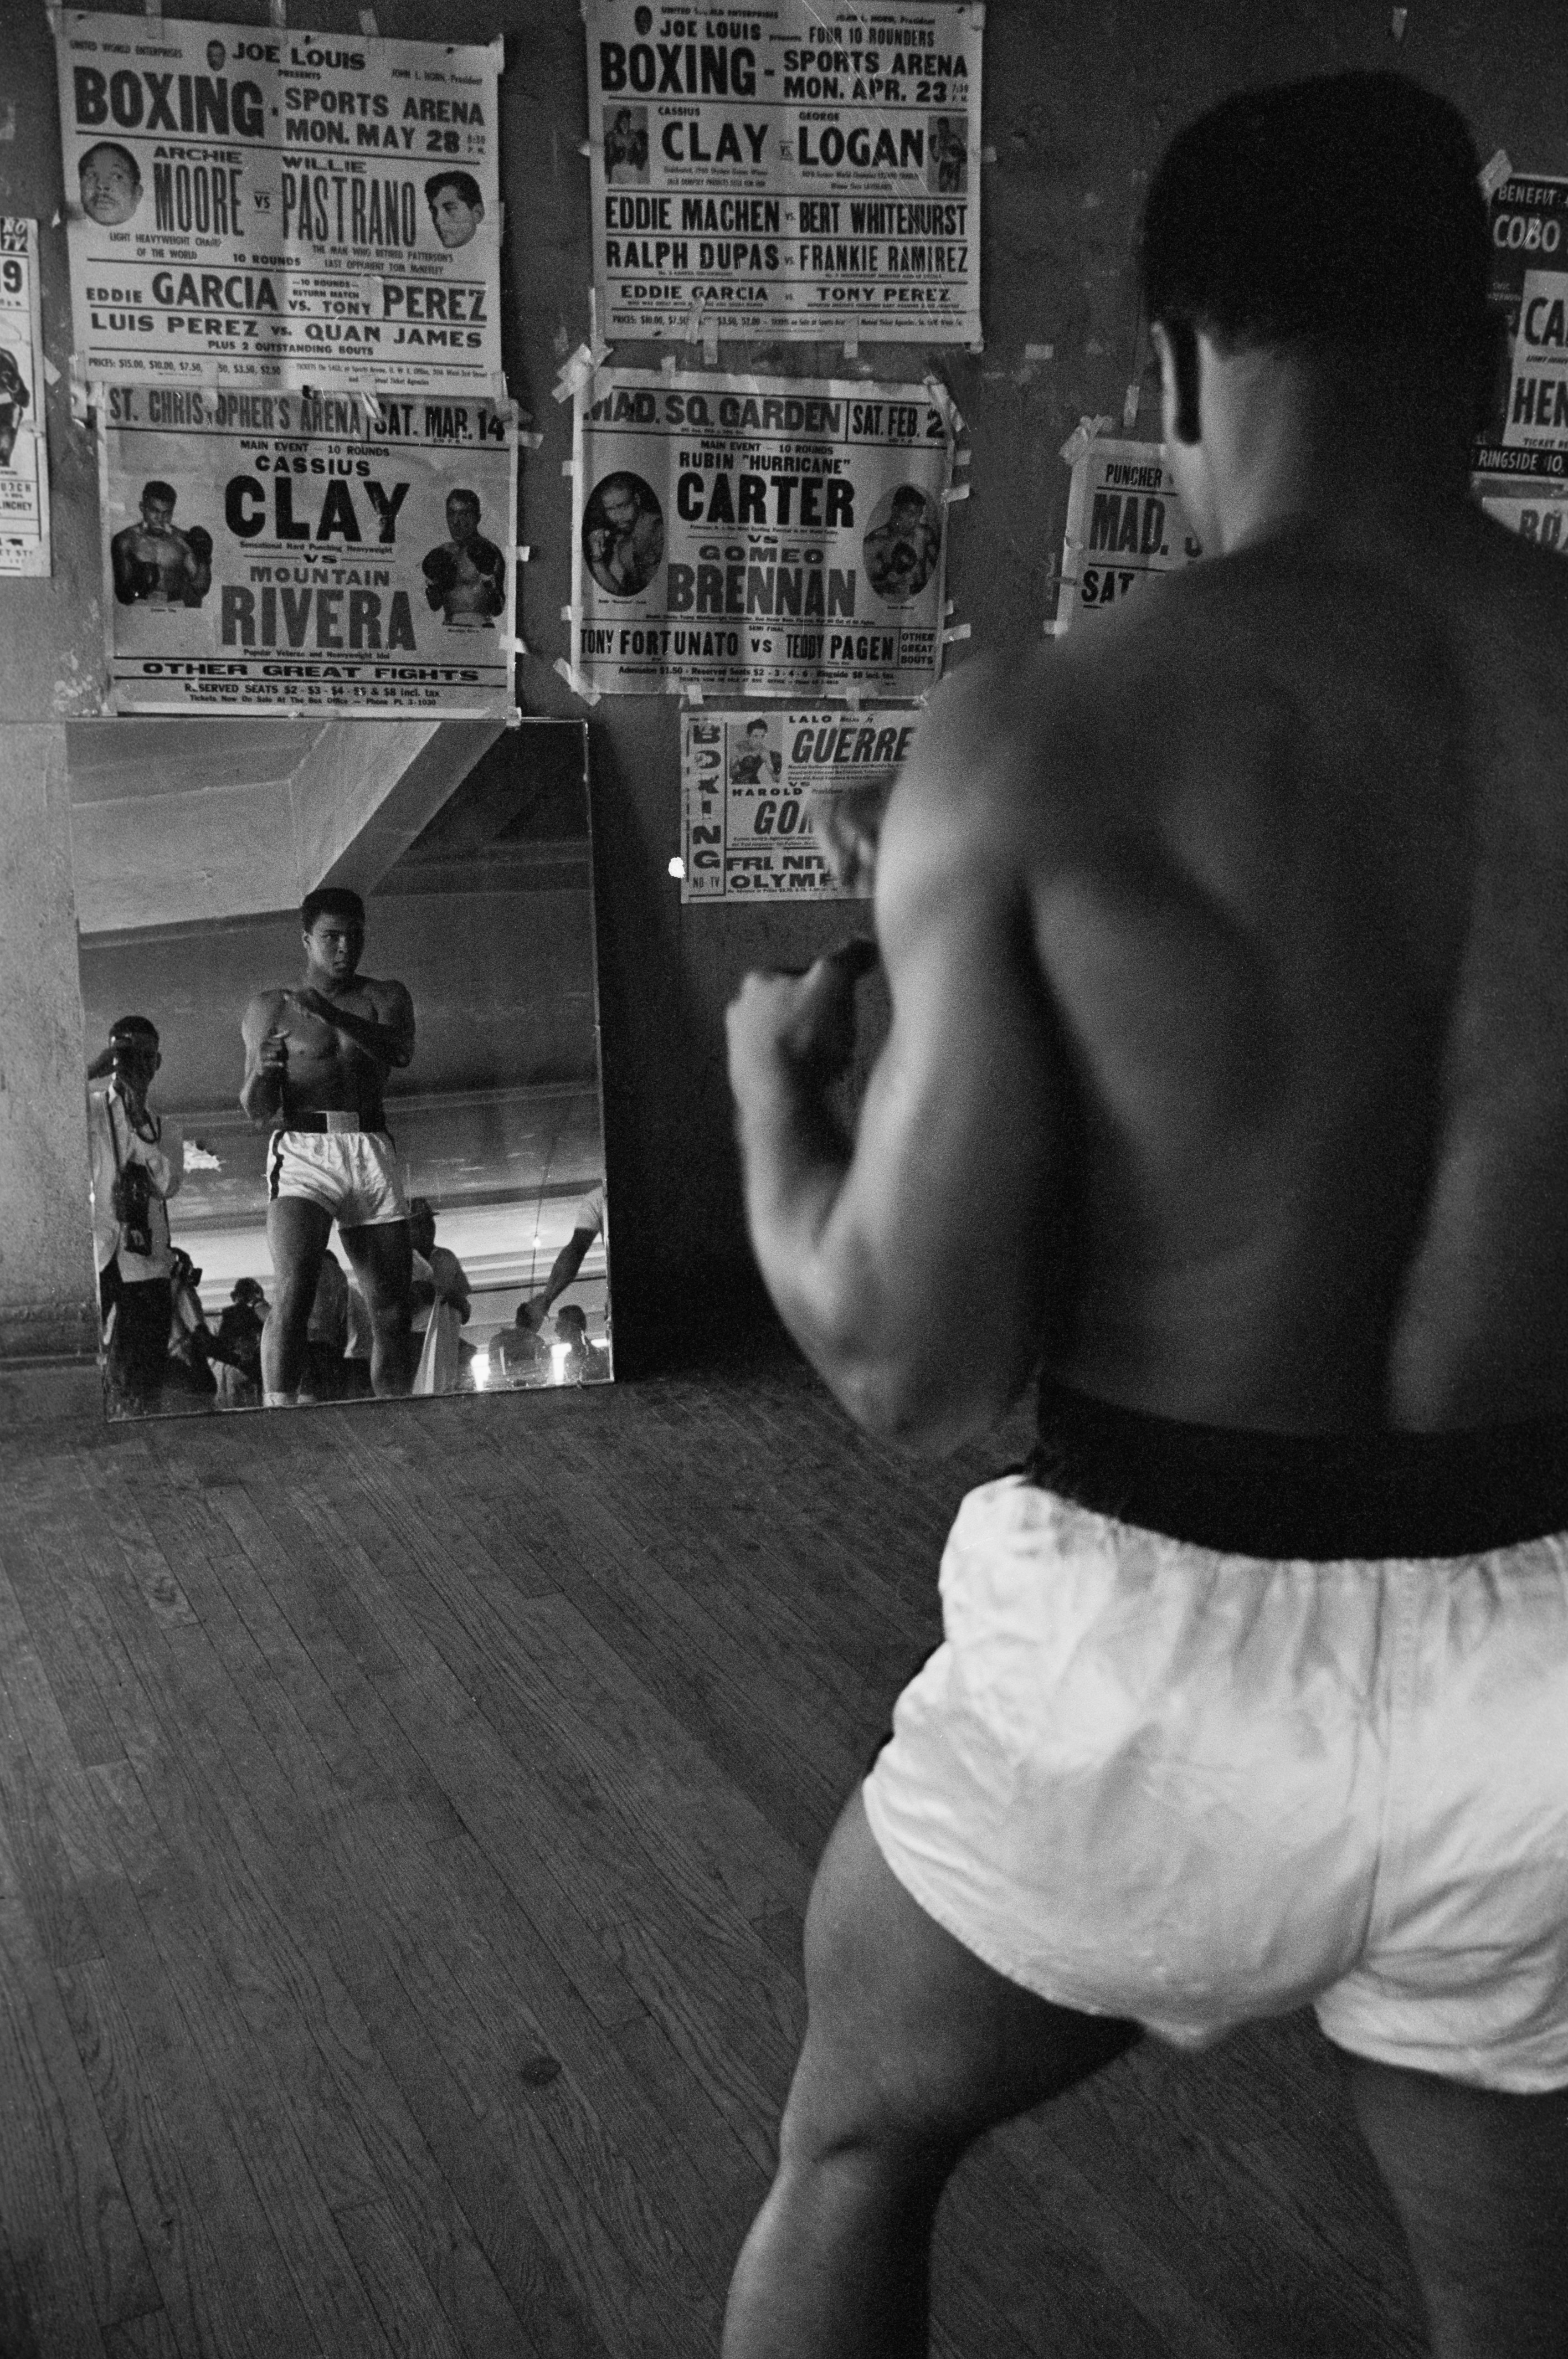 Heavyweight contender Cassius Clay watches himself in a mirror at his training gym as he prepares for a title fight with champion Sonny Liston.